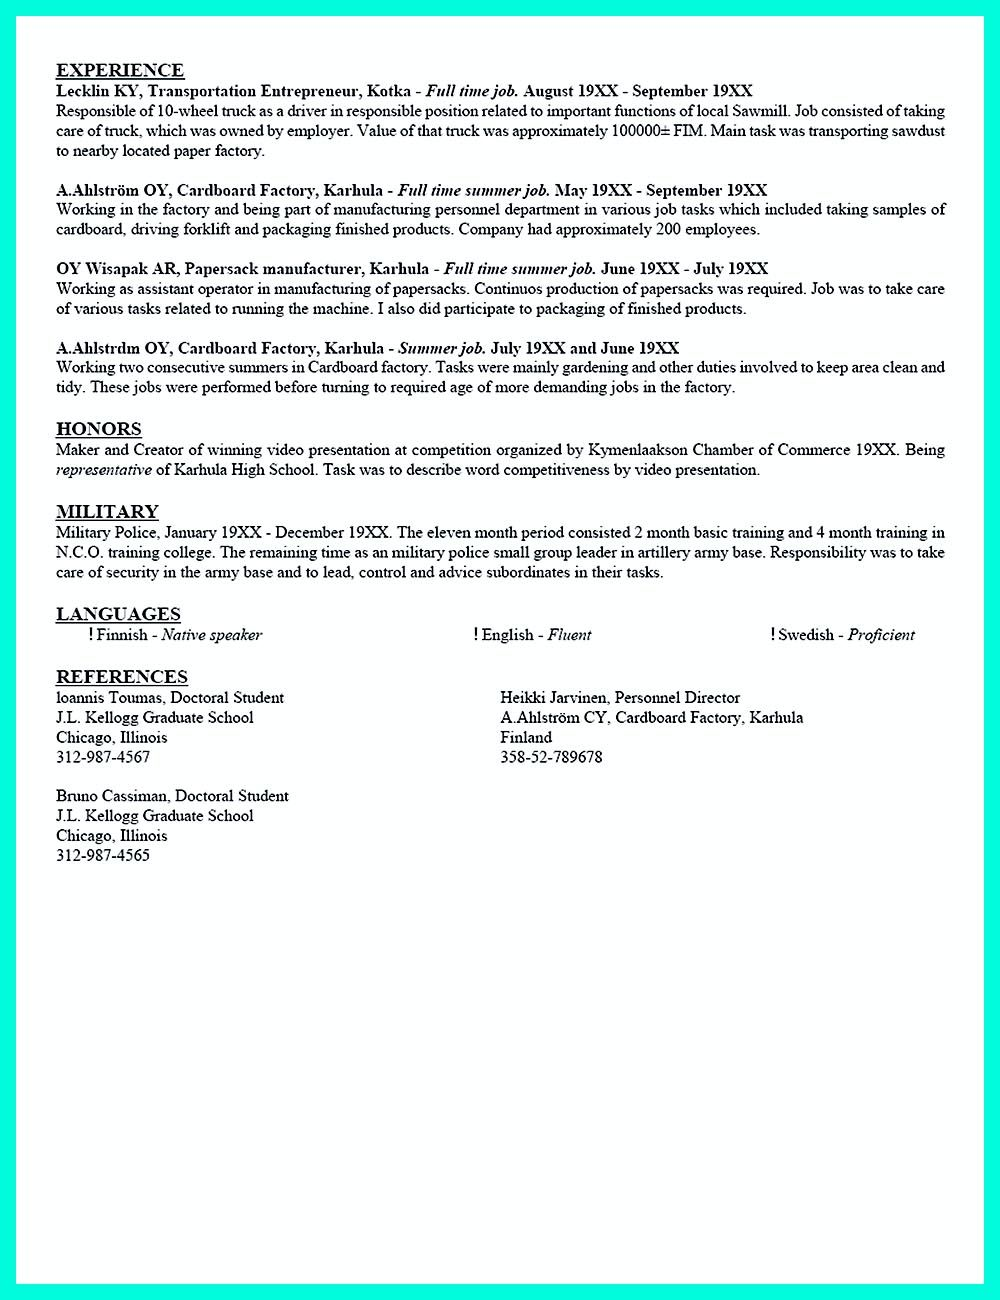 current college student resume is designed for fresh graduate student who want to get a job - Summer Jobs For College Students Best Jobs For Students In Summer Times